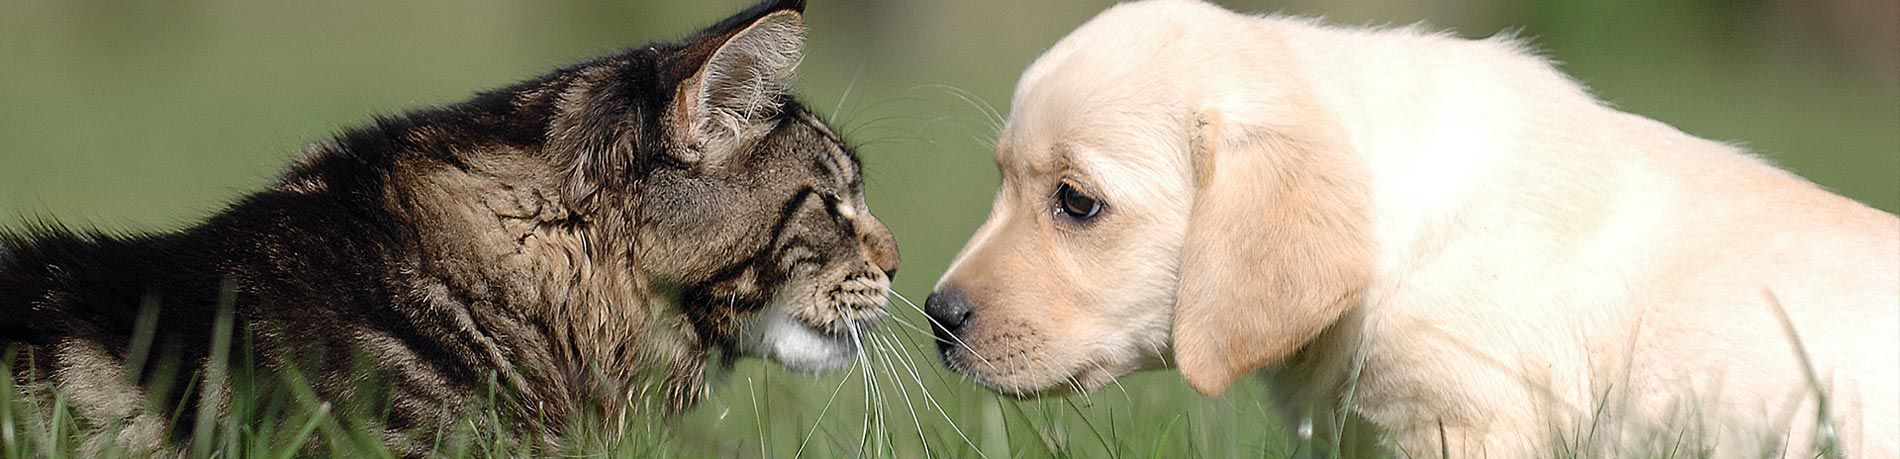 cat and dog face to face